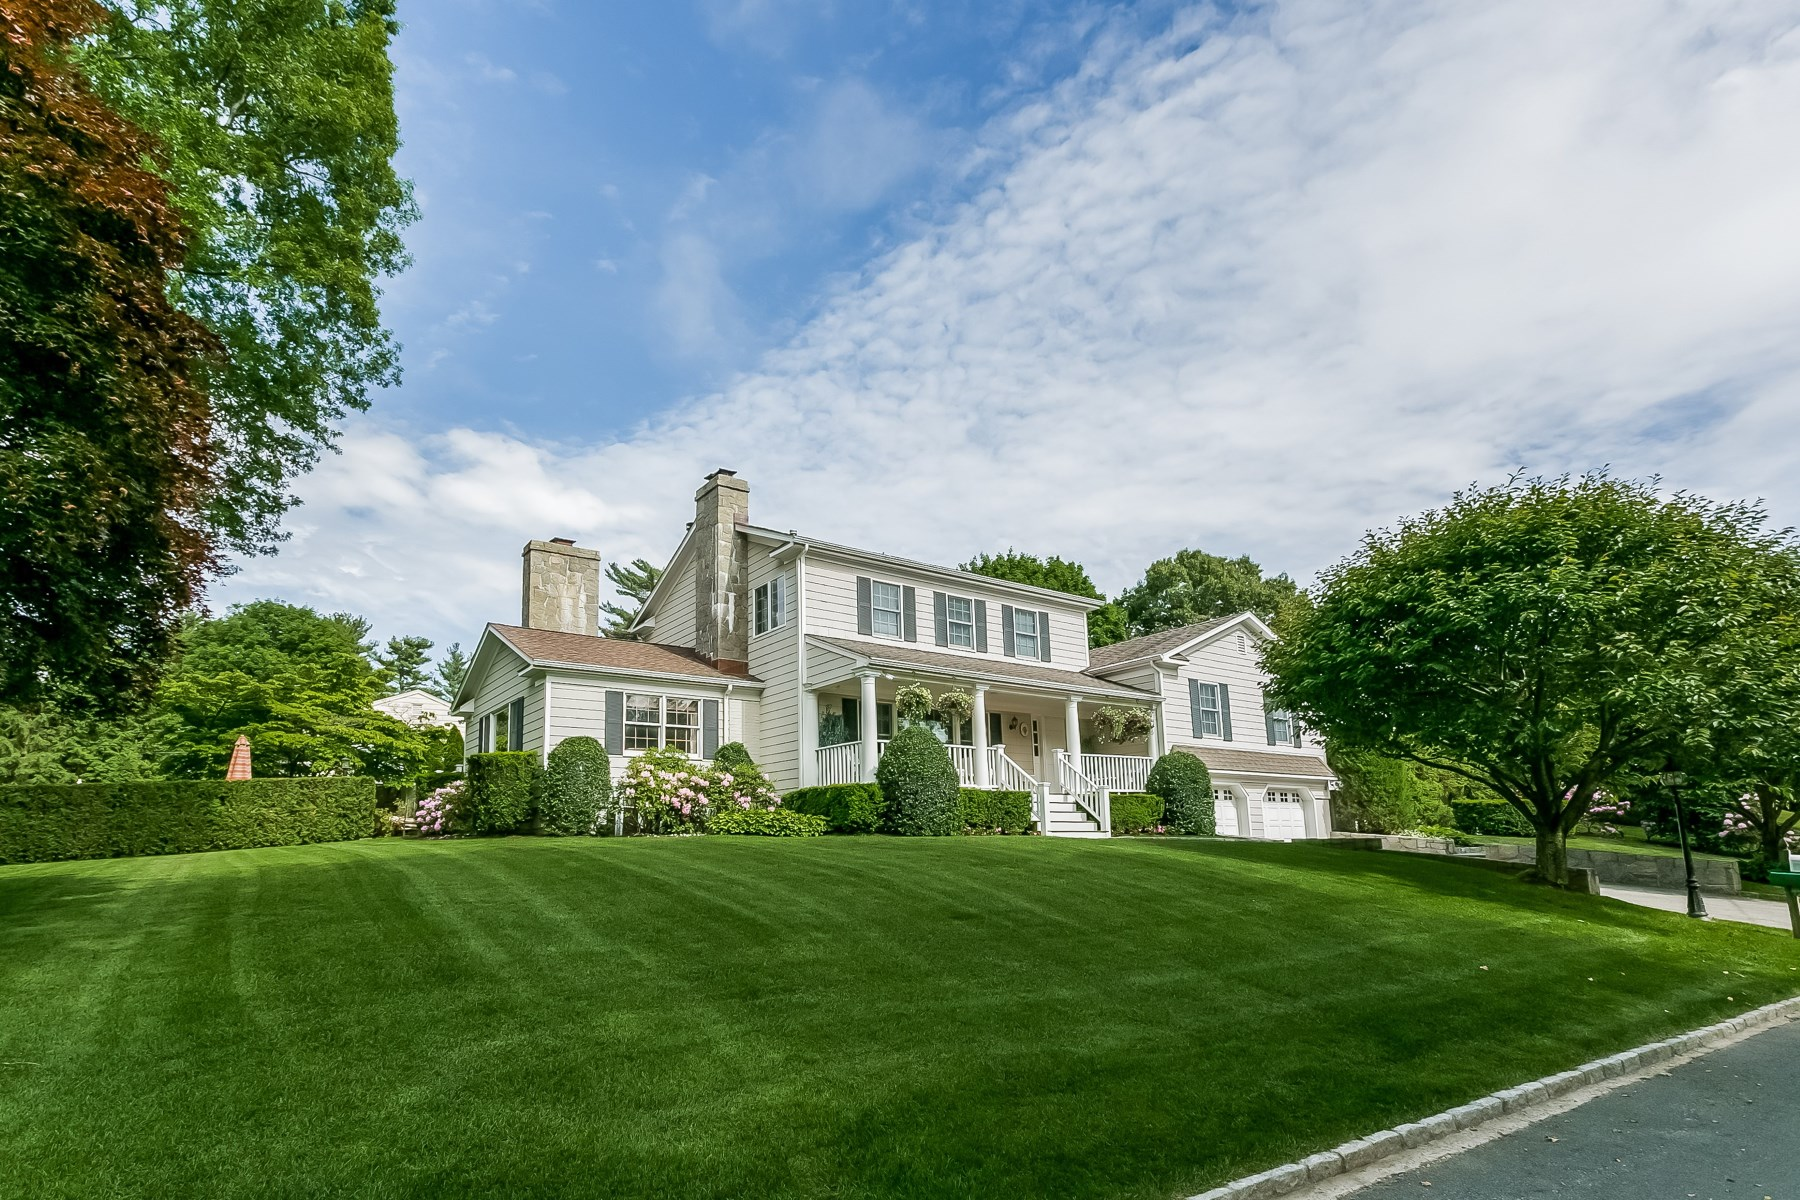 Single Family Home for Sale at In-Town with Pool 2 Widgeon Way Central Greenwich, Greenwich, Connecticut 06830 United States